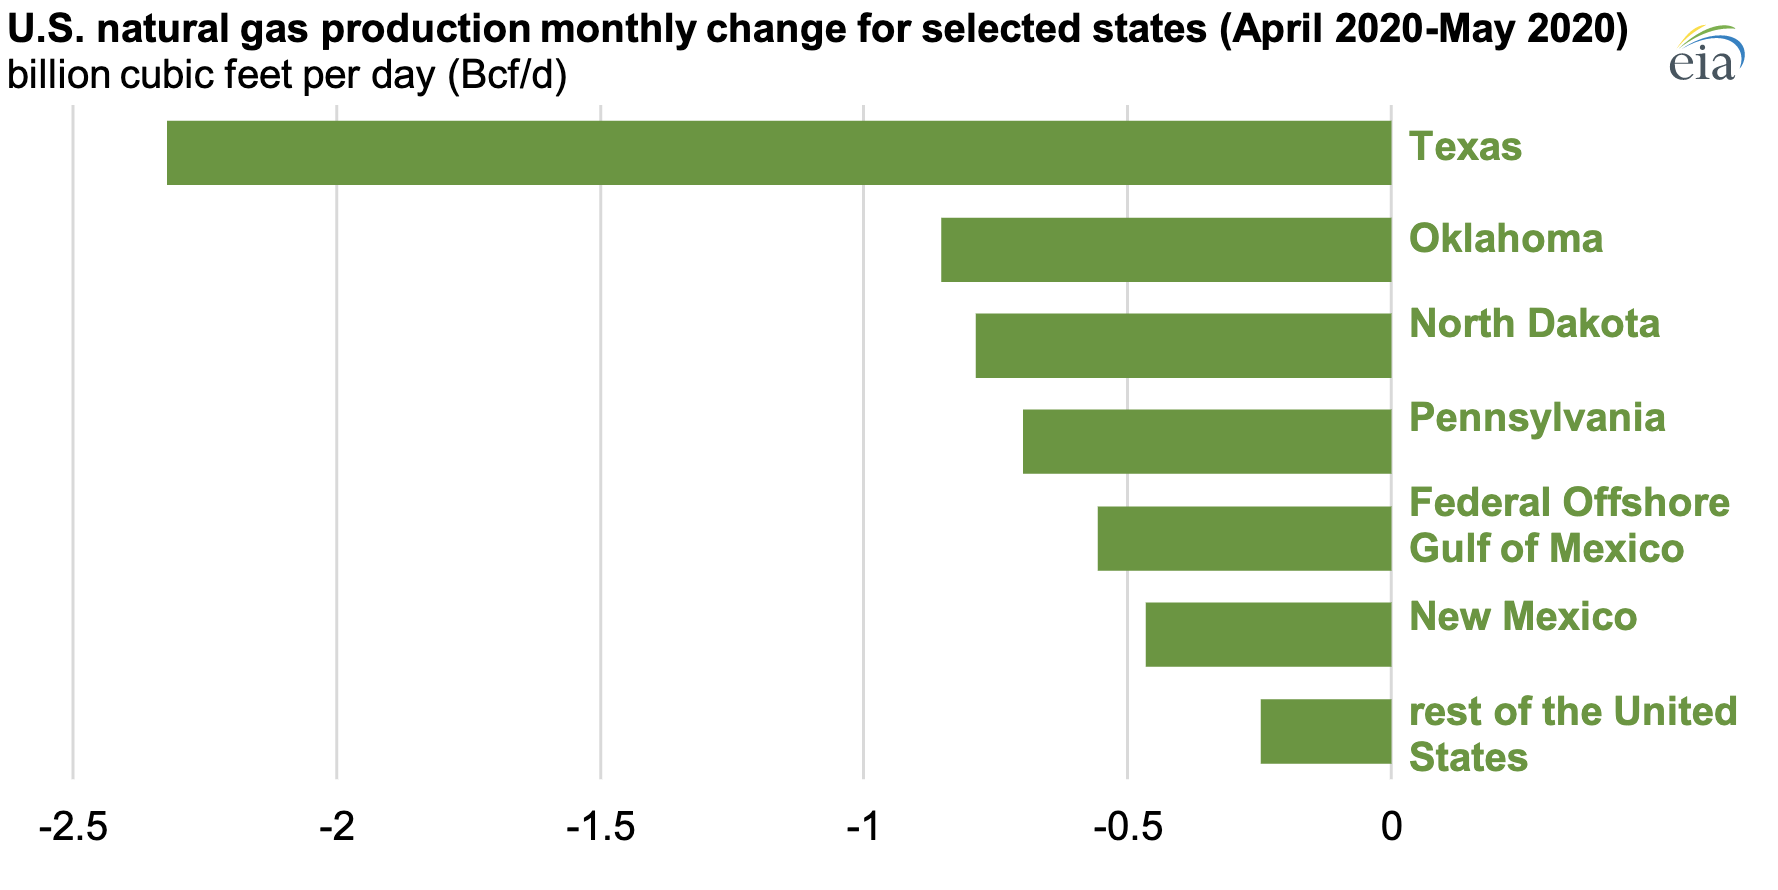 U.S. natural gas production monthly change for selected states (April 2020-May 2020)